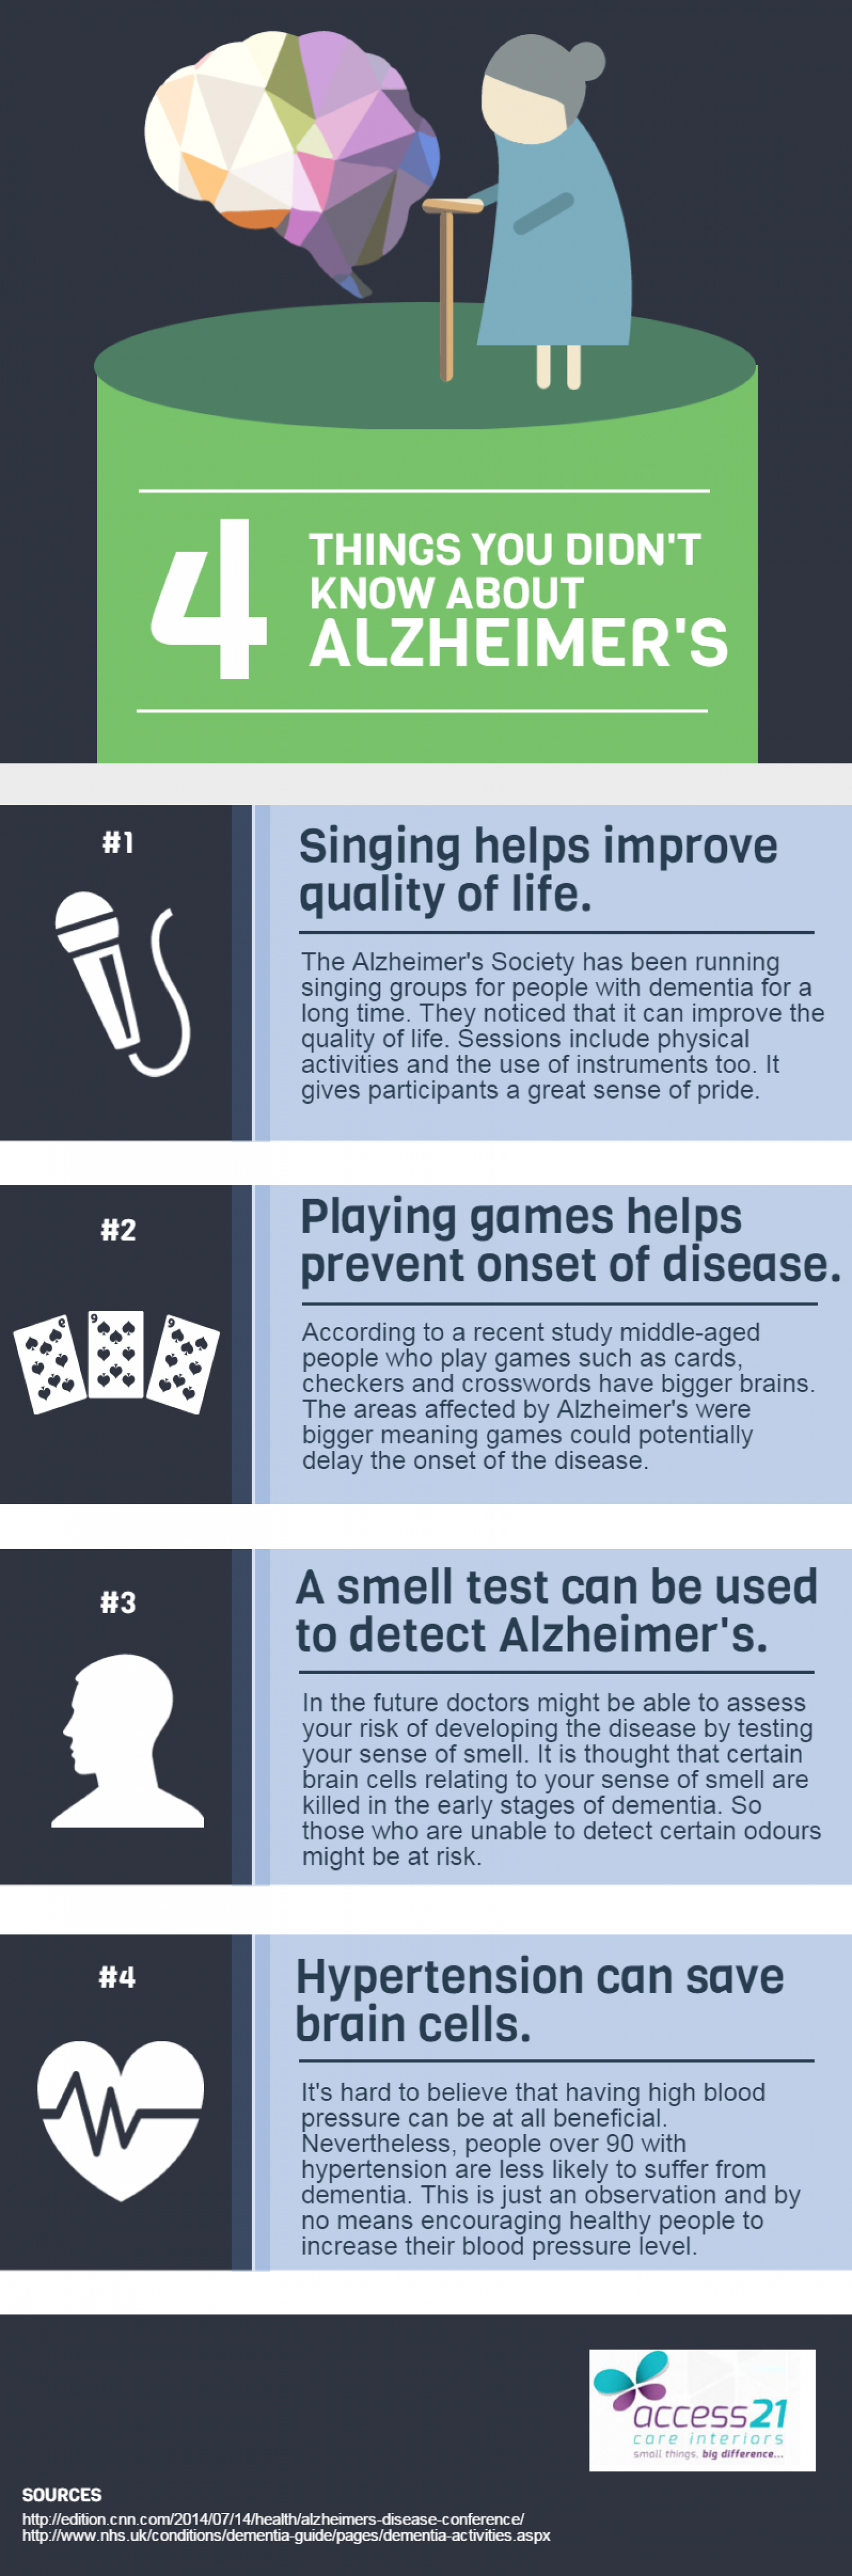 4 Things You Didn't Know About Alzheimer's Infographic